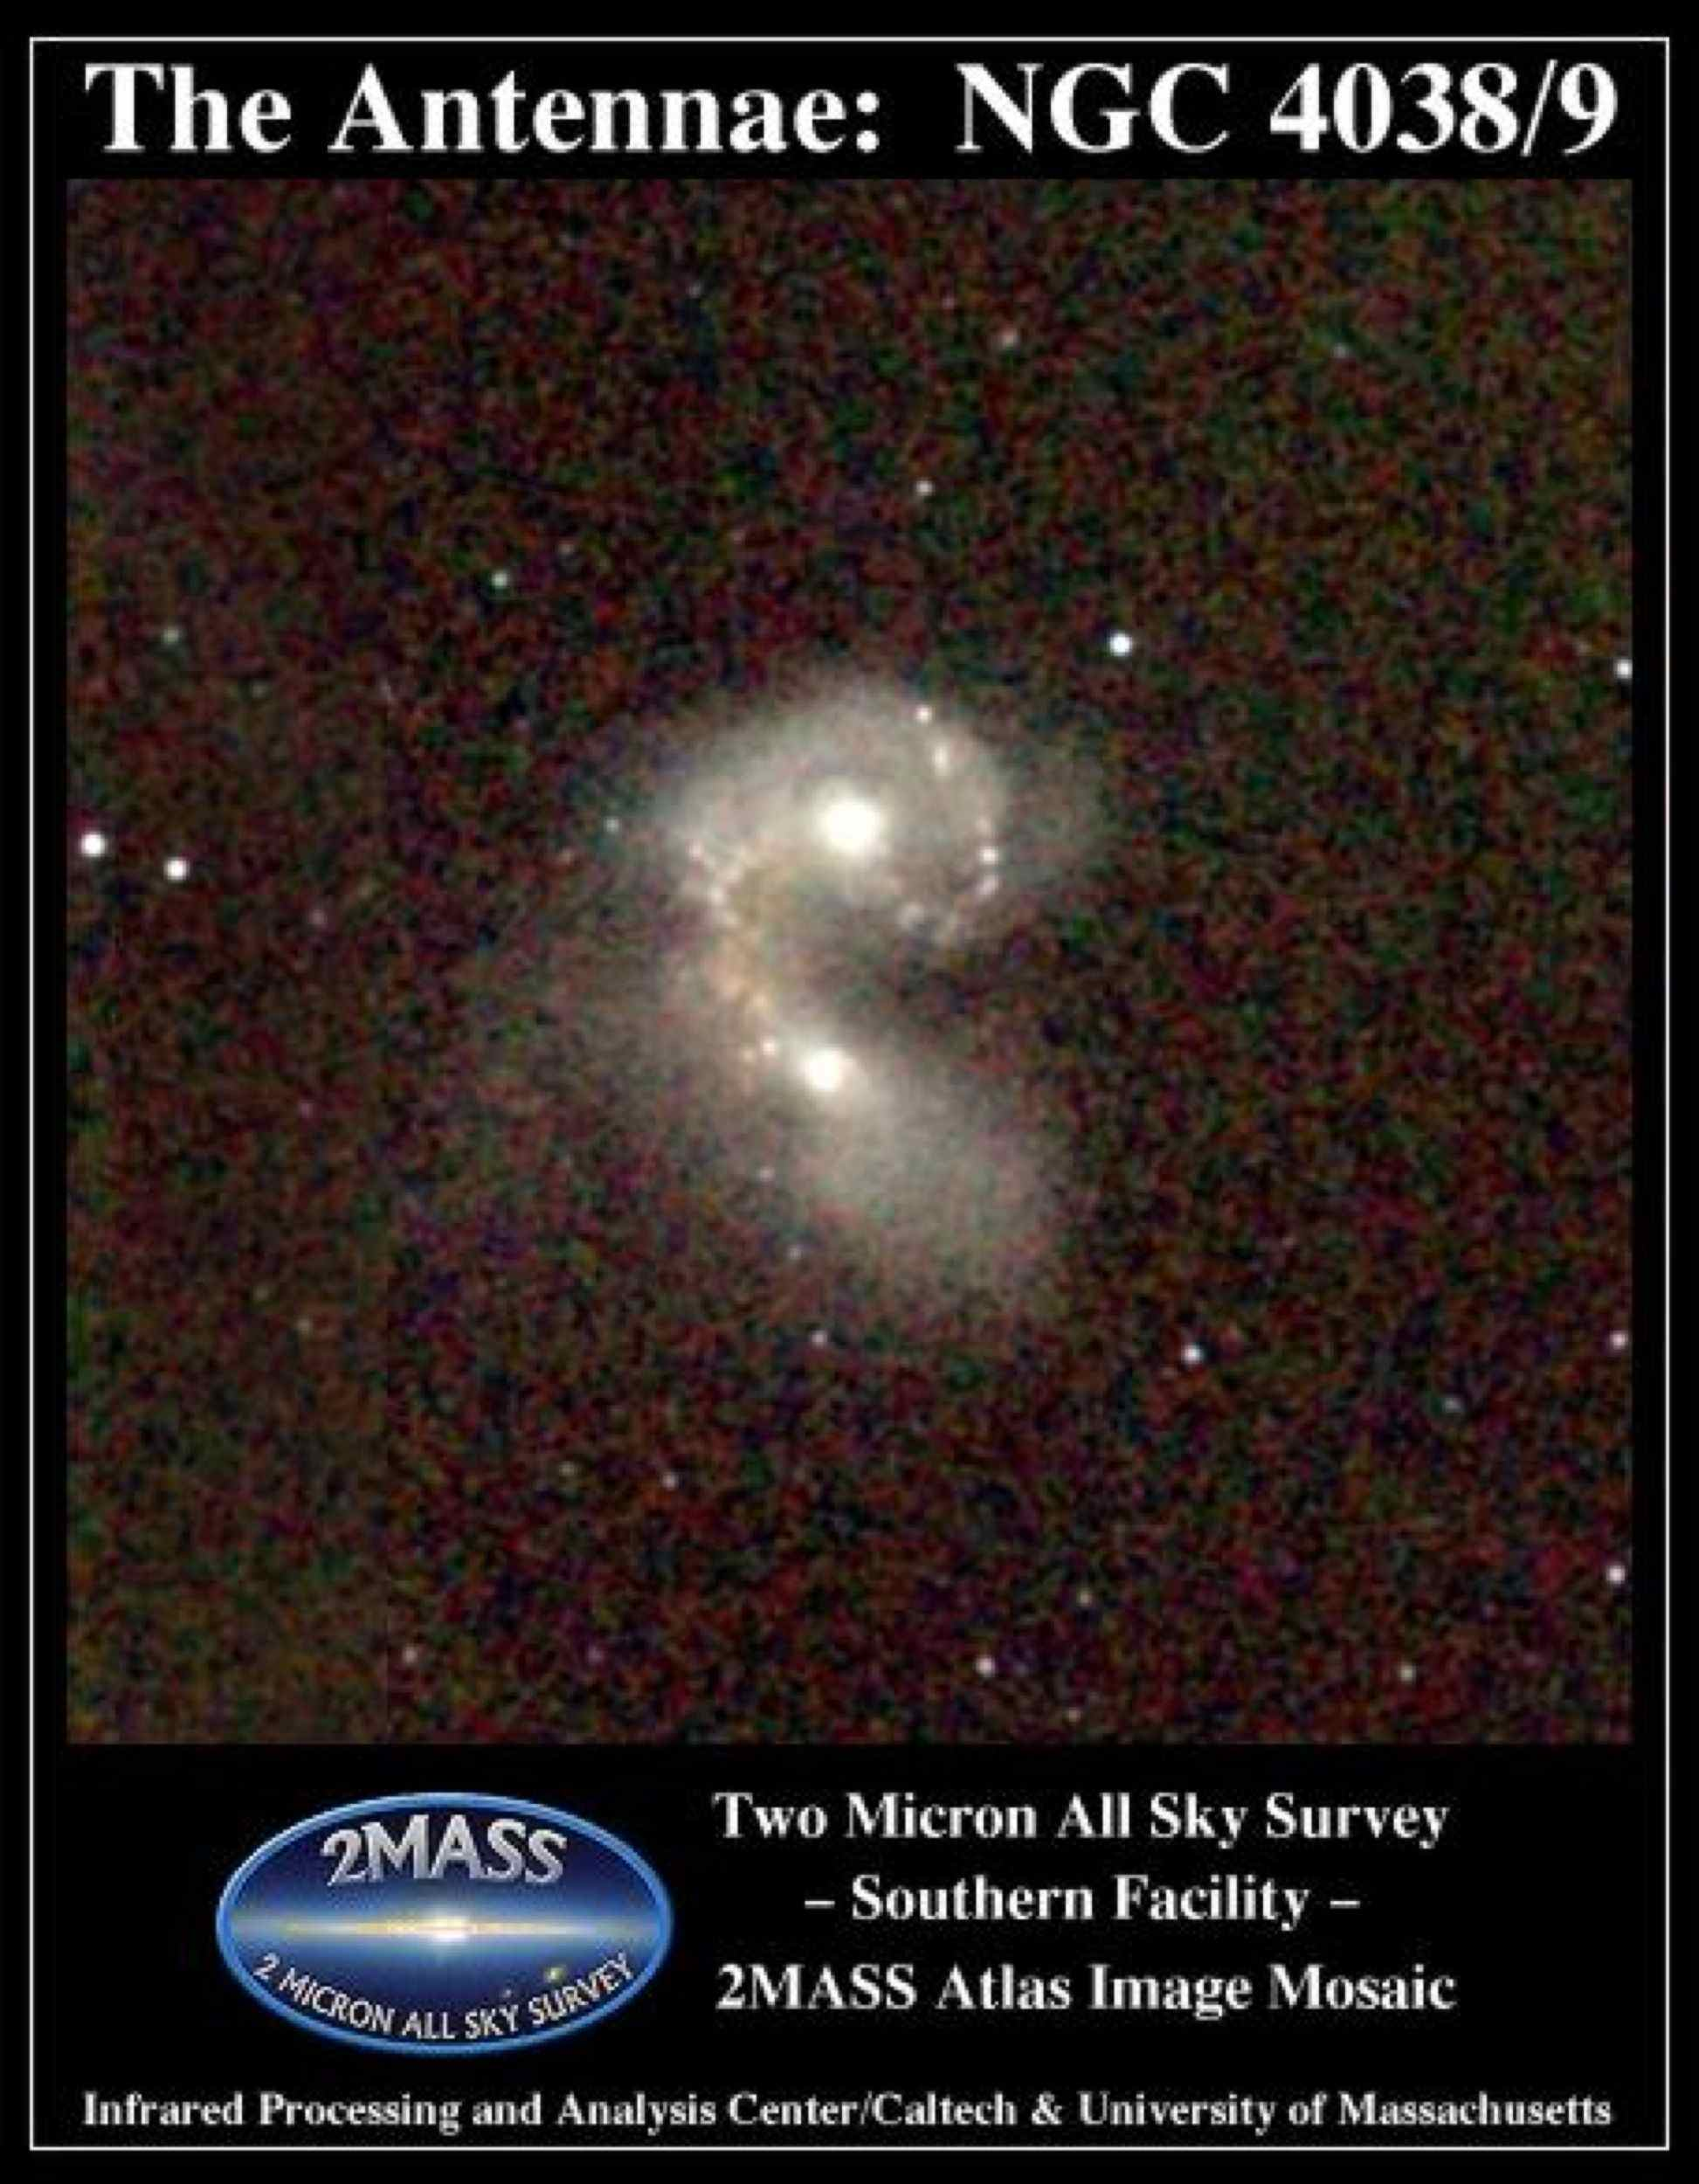 Atlas Image mosaic, covering 7' x 7' on the sky of the interacting galaxies NGC 4038 and NGC 4039, better known as the Antennae, or Ring Tail galaxies. The two galaxies are engaged in a tug-of-war as they collide.